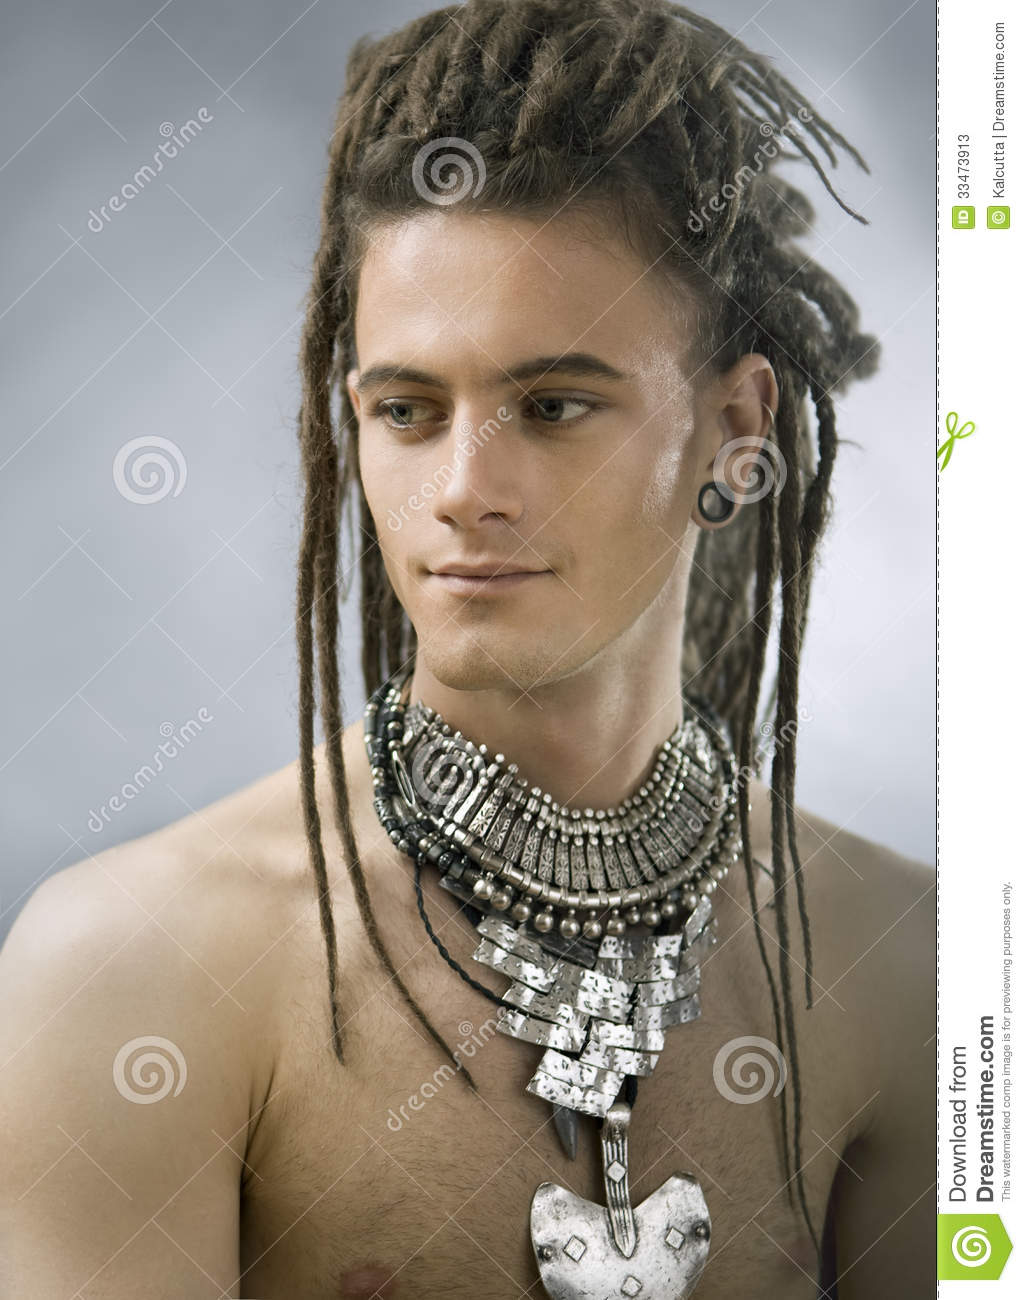 Handsome Guy With Dreadlocks And Jewelry Stock Photos